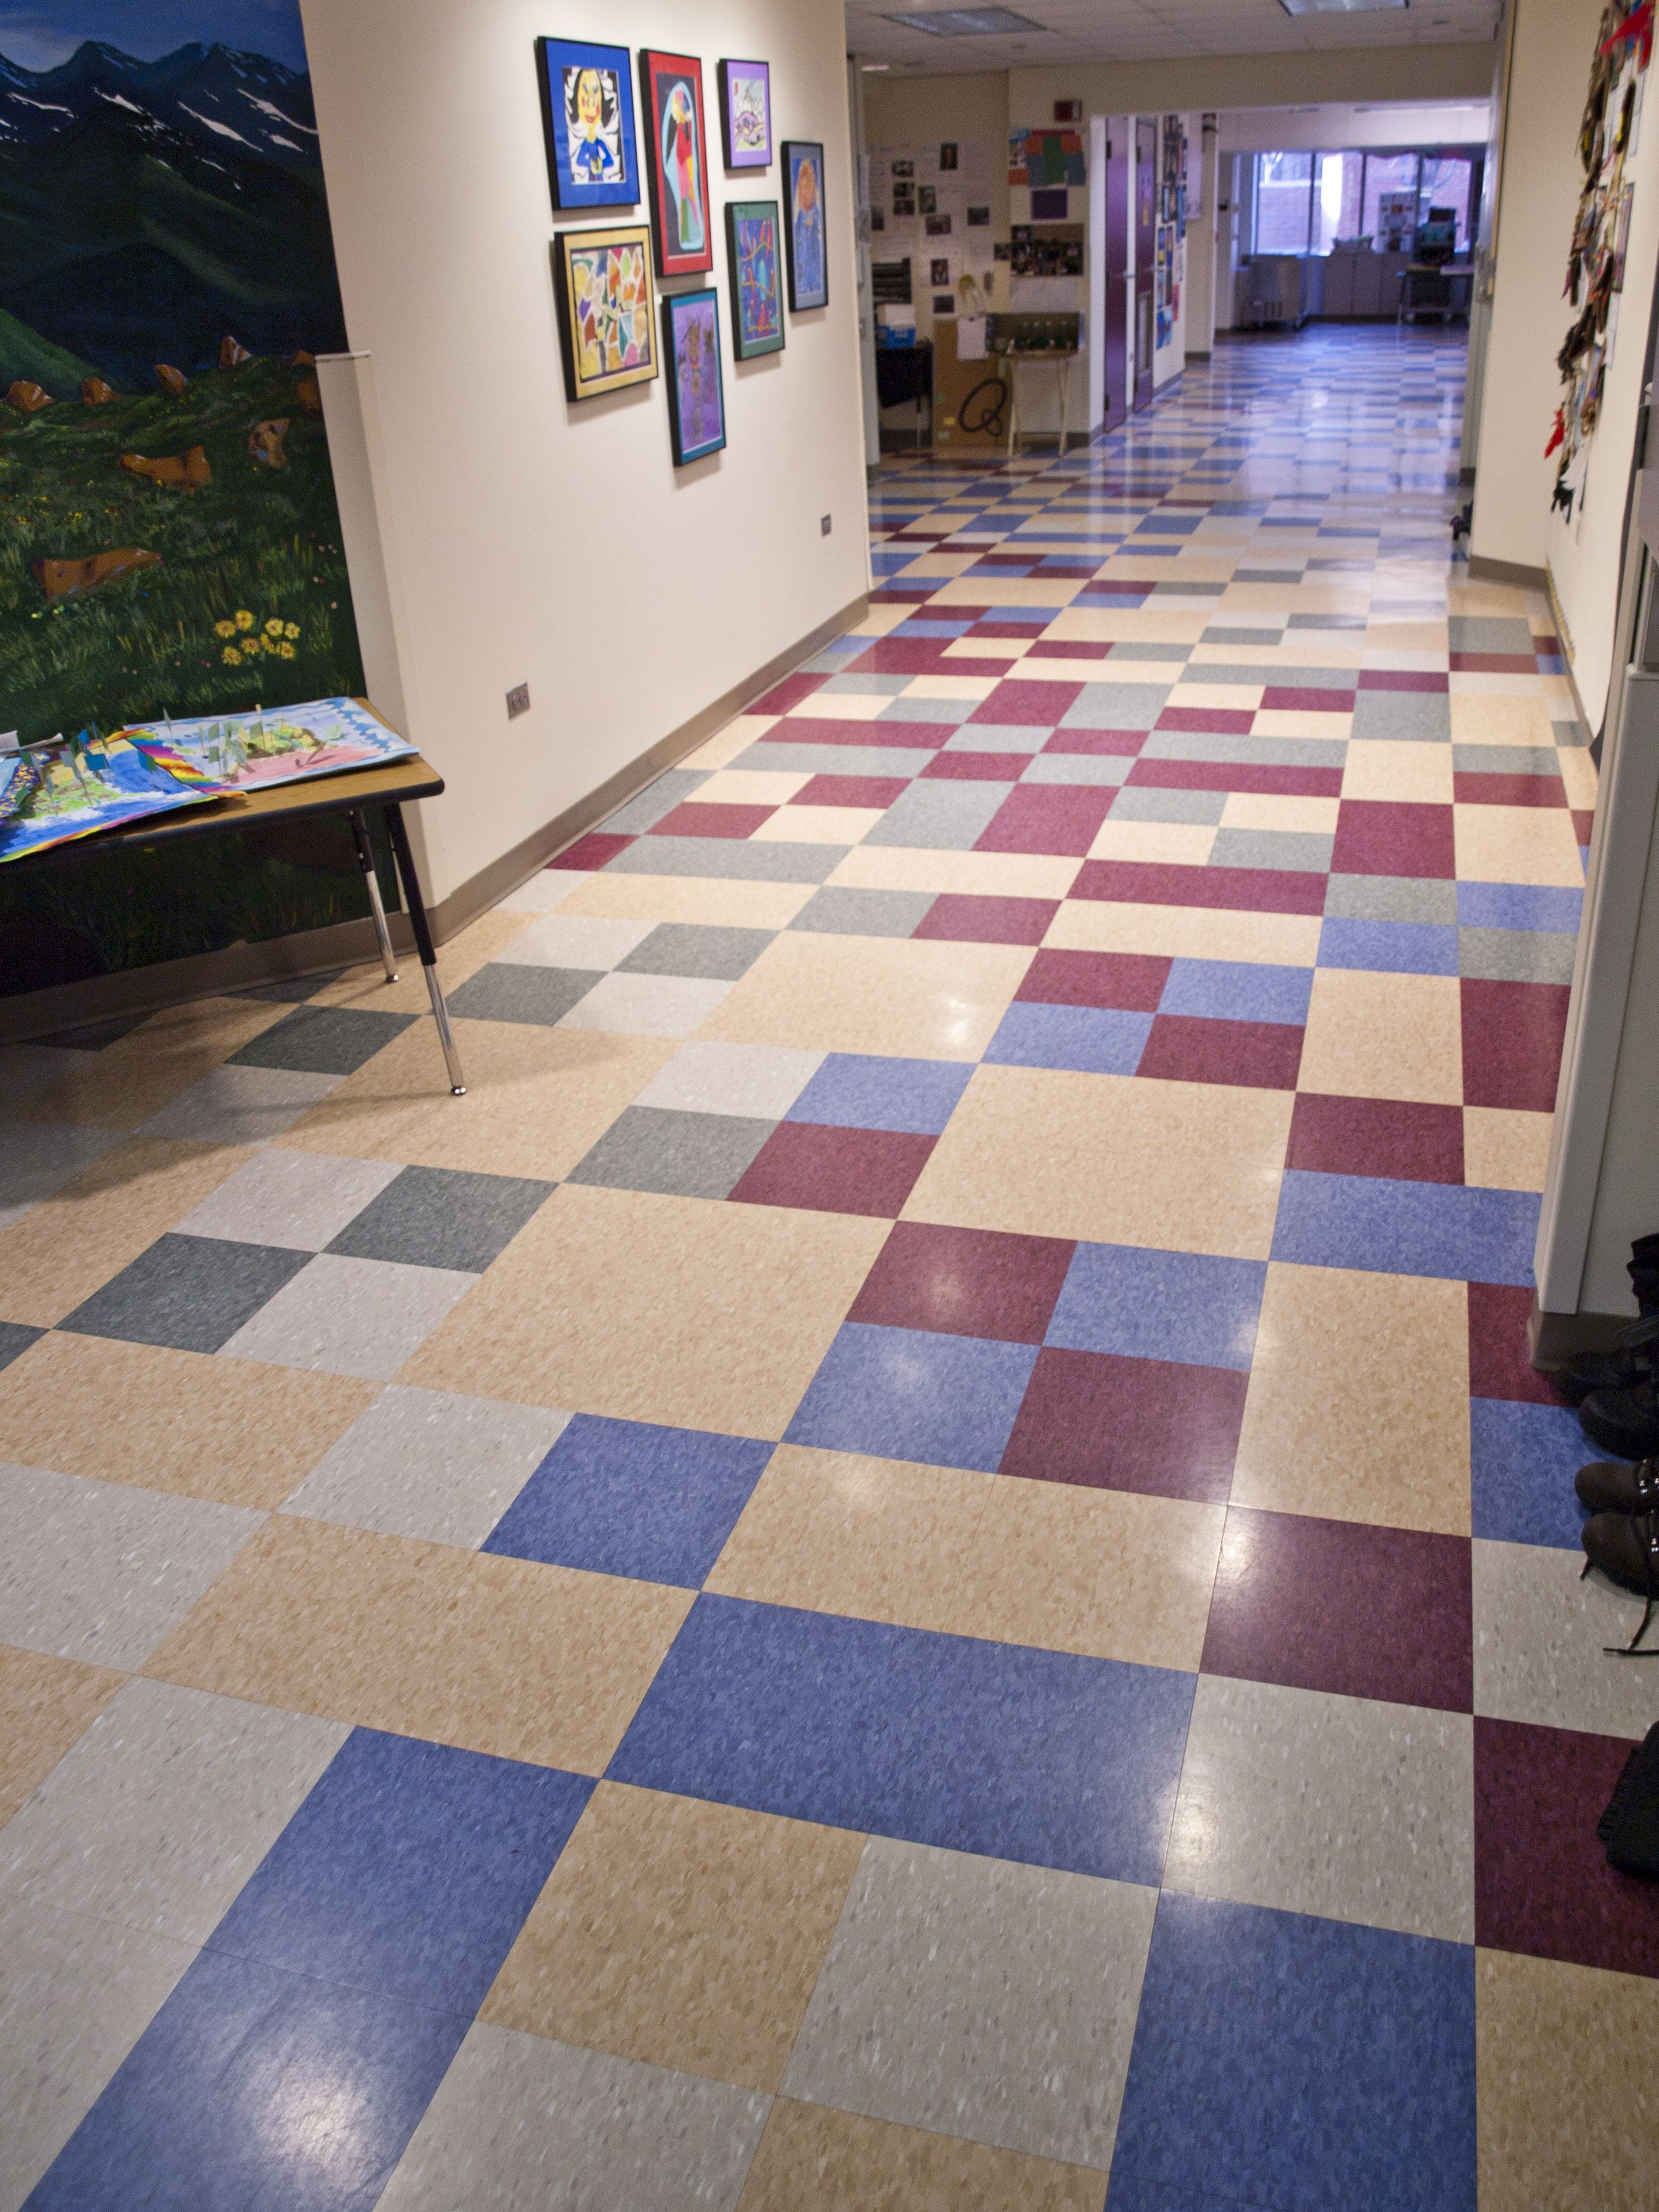 Awesome Flooring Using Chic Vct Tile Ideas Wonderful Pattern For